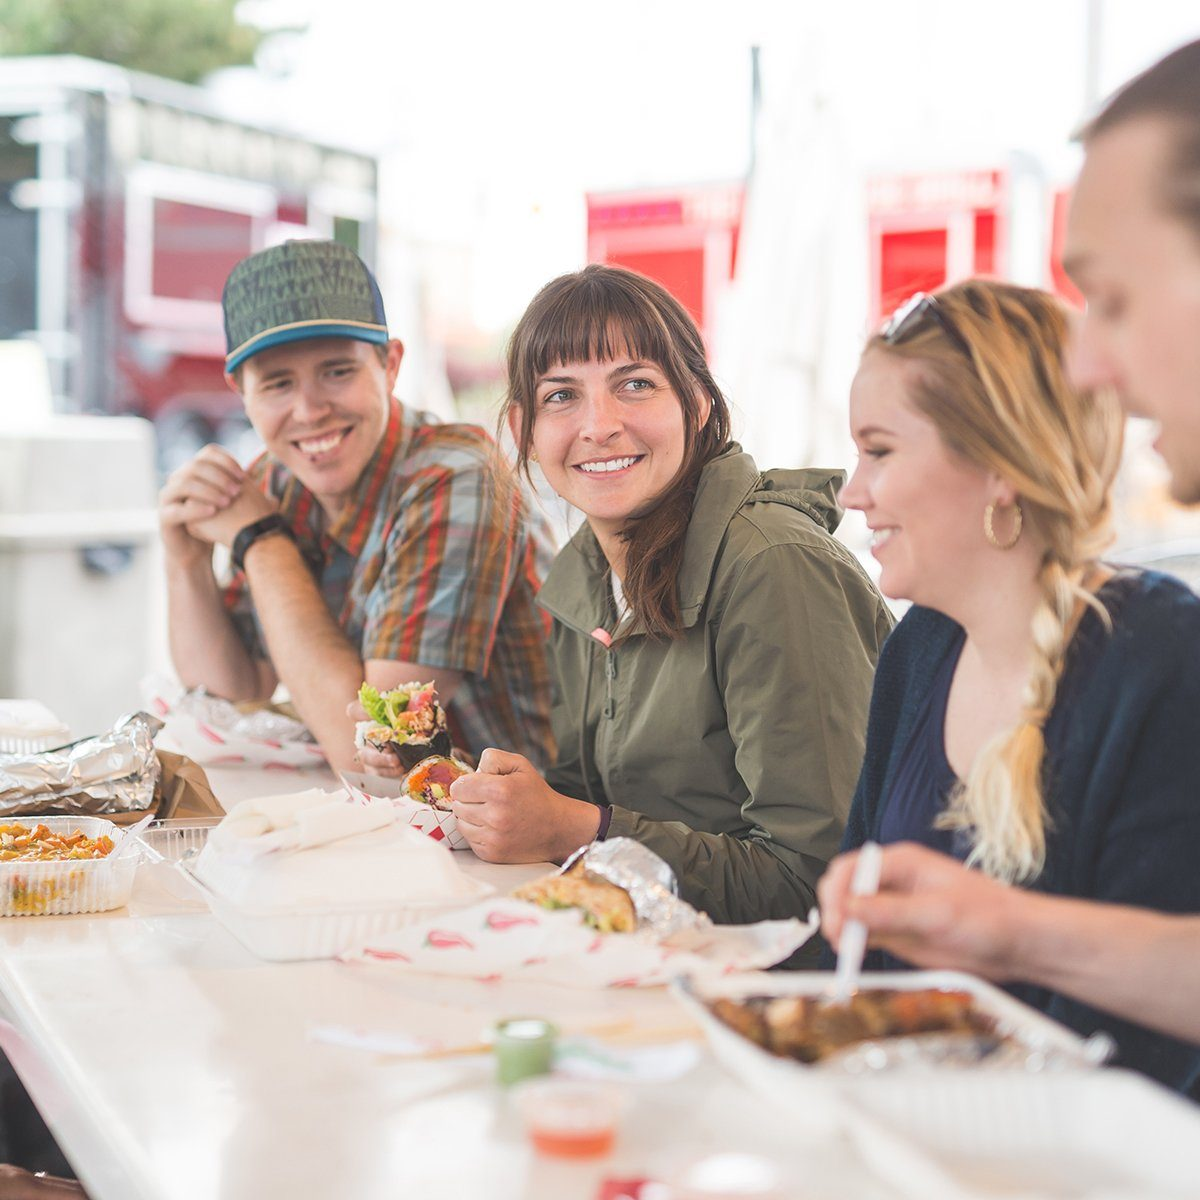 Group of hipster friends in their 20s and 30s enjoy lunch at an outdoor food cart. They are smiling, talking, and enjoying their to-go food at the picnic table.